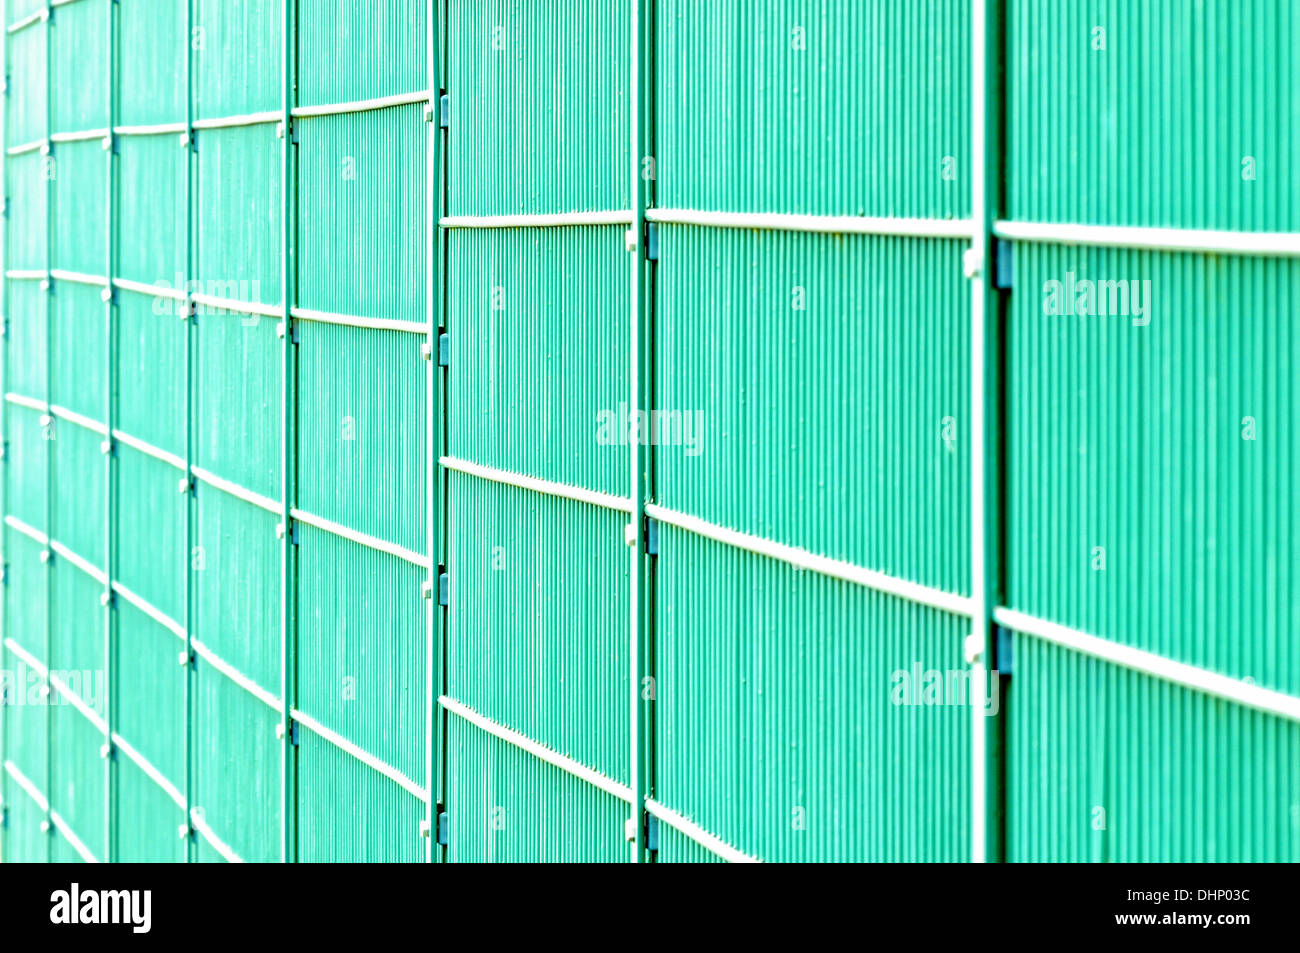 barred Stock Royalty Free Image Alamy